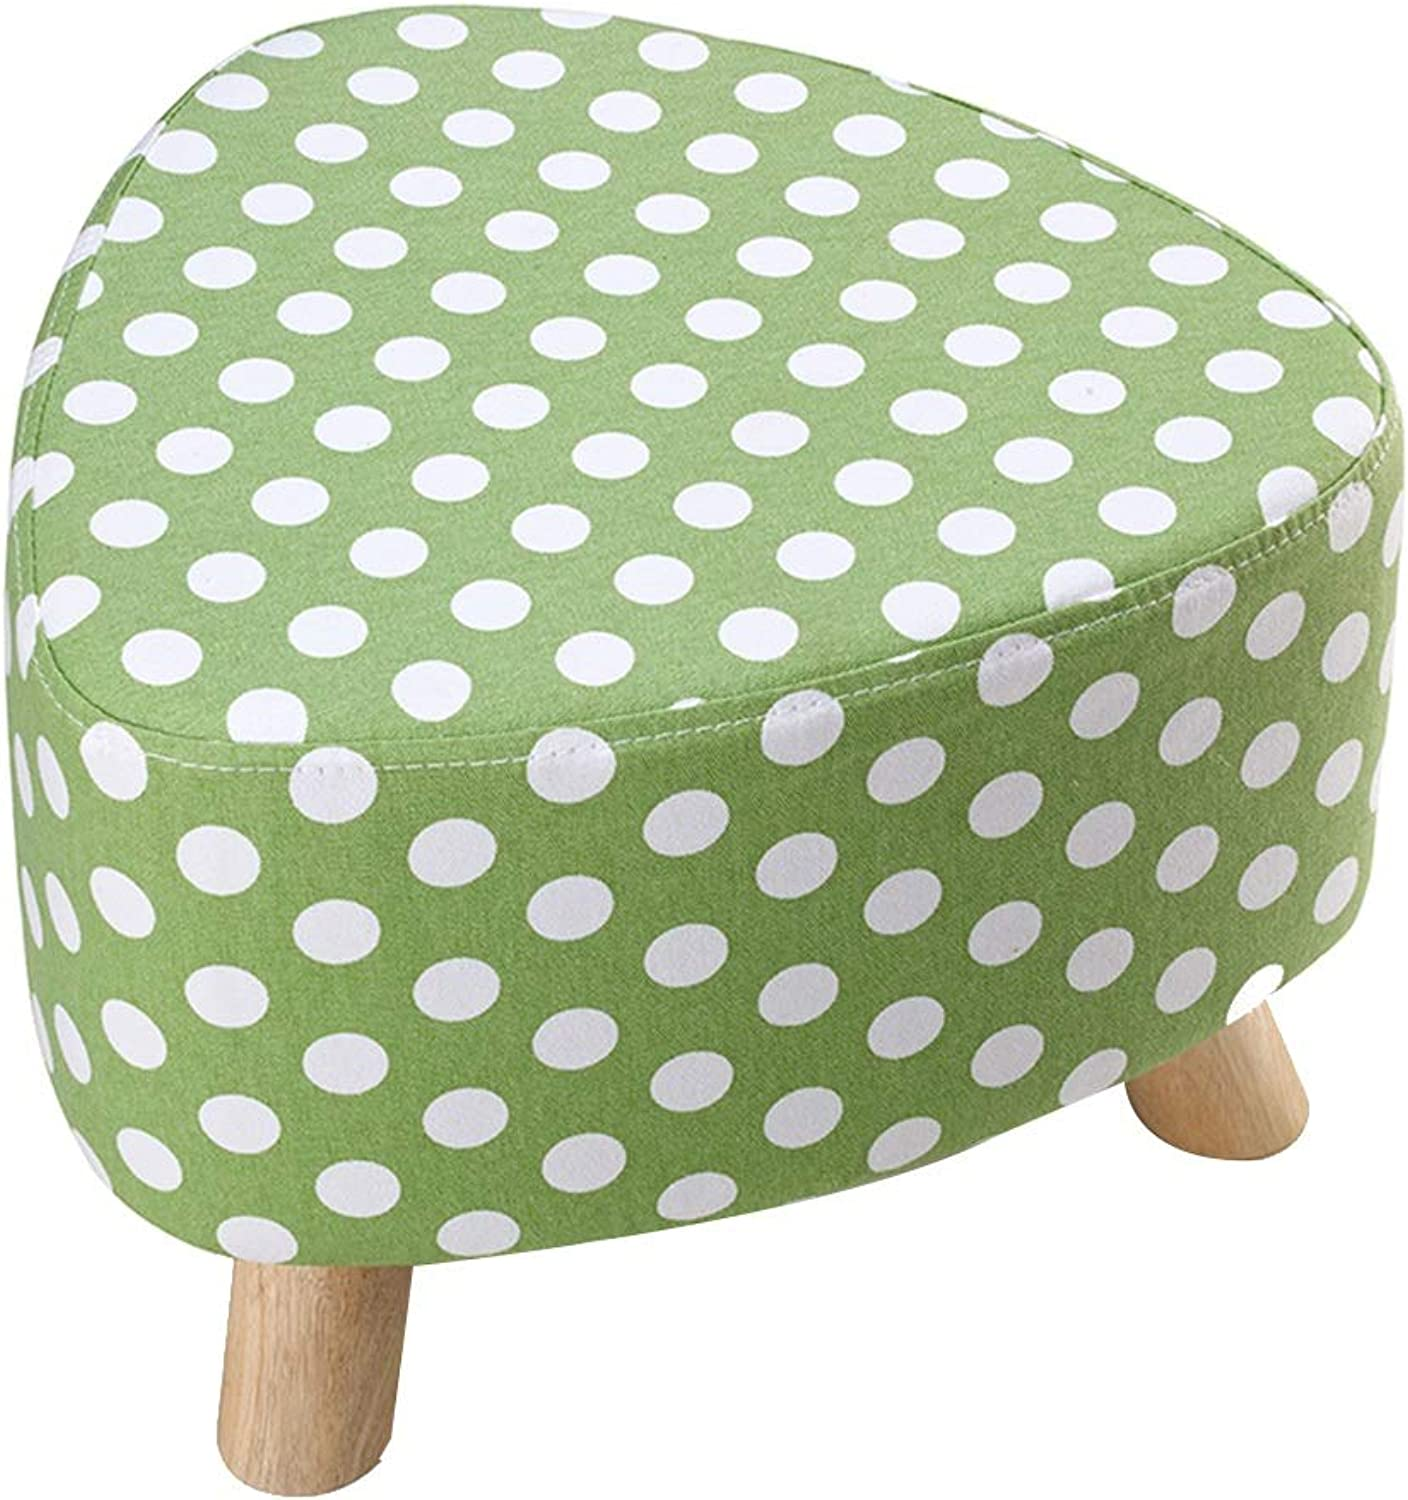 WEIYV-Barstools,bar Chair Triangle Small Stool Washable Change shoes Stool European Style Cloth Sofa Stool Wearing shoes Low Stool Solid Wood Seat (30 39cm) (color   Green 39cm, Size   A)